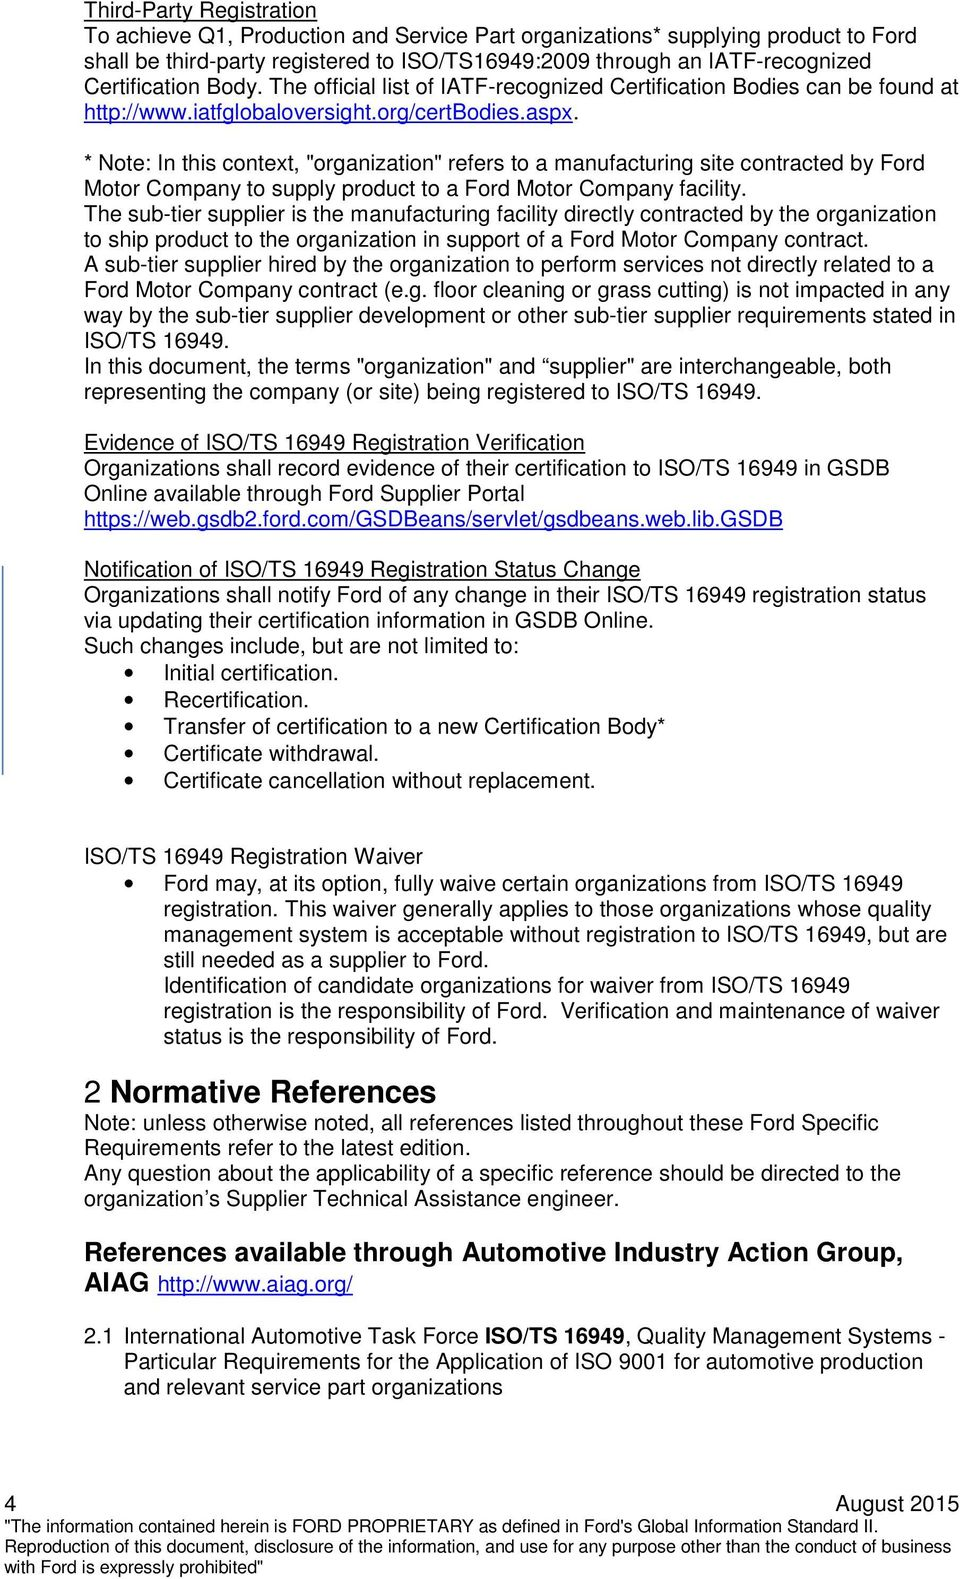 Ford Motor Company Customer Specific Requirements Pdf